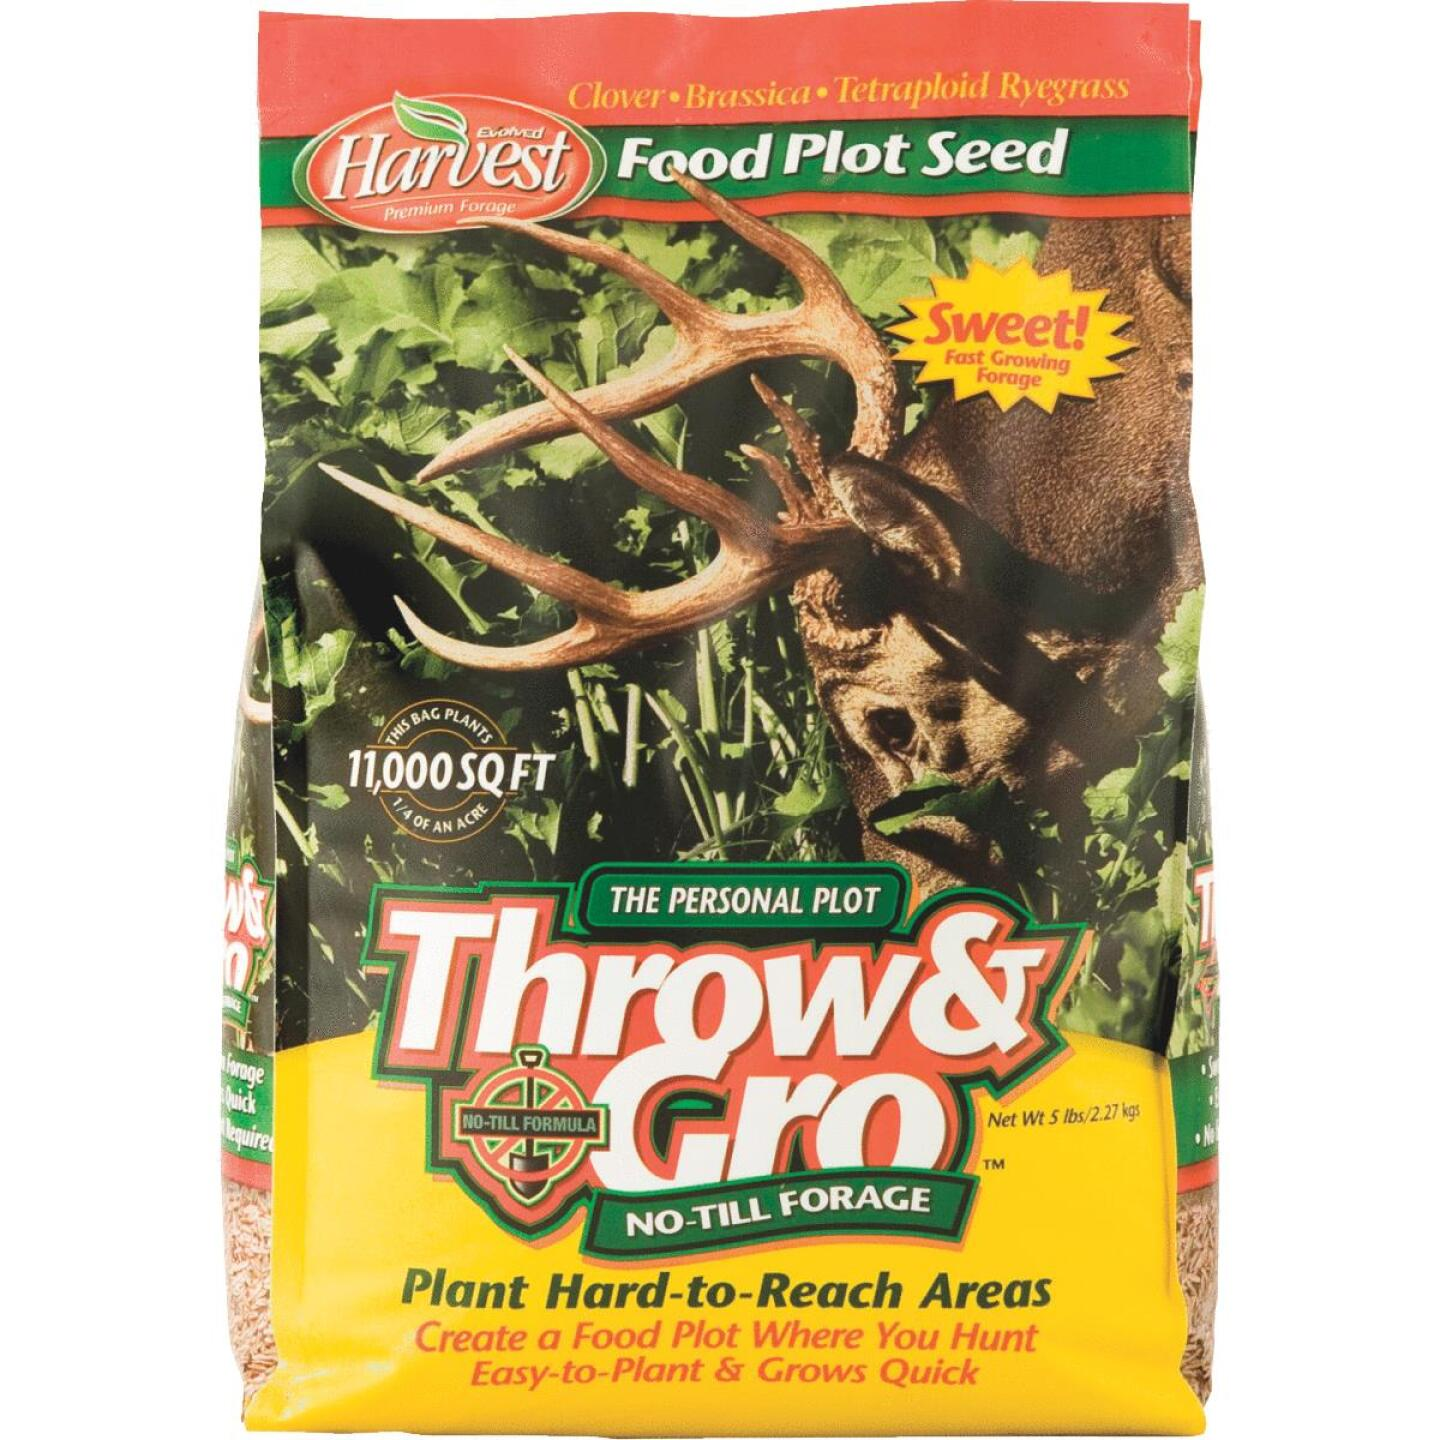 Evolved Harvest Throw & Gro 5 Lb. 11,000 Sq. Ft. Coverage Clover, Brassica, & Tetraploid Ryegrass Forage Seed Image 1